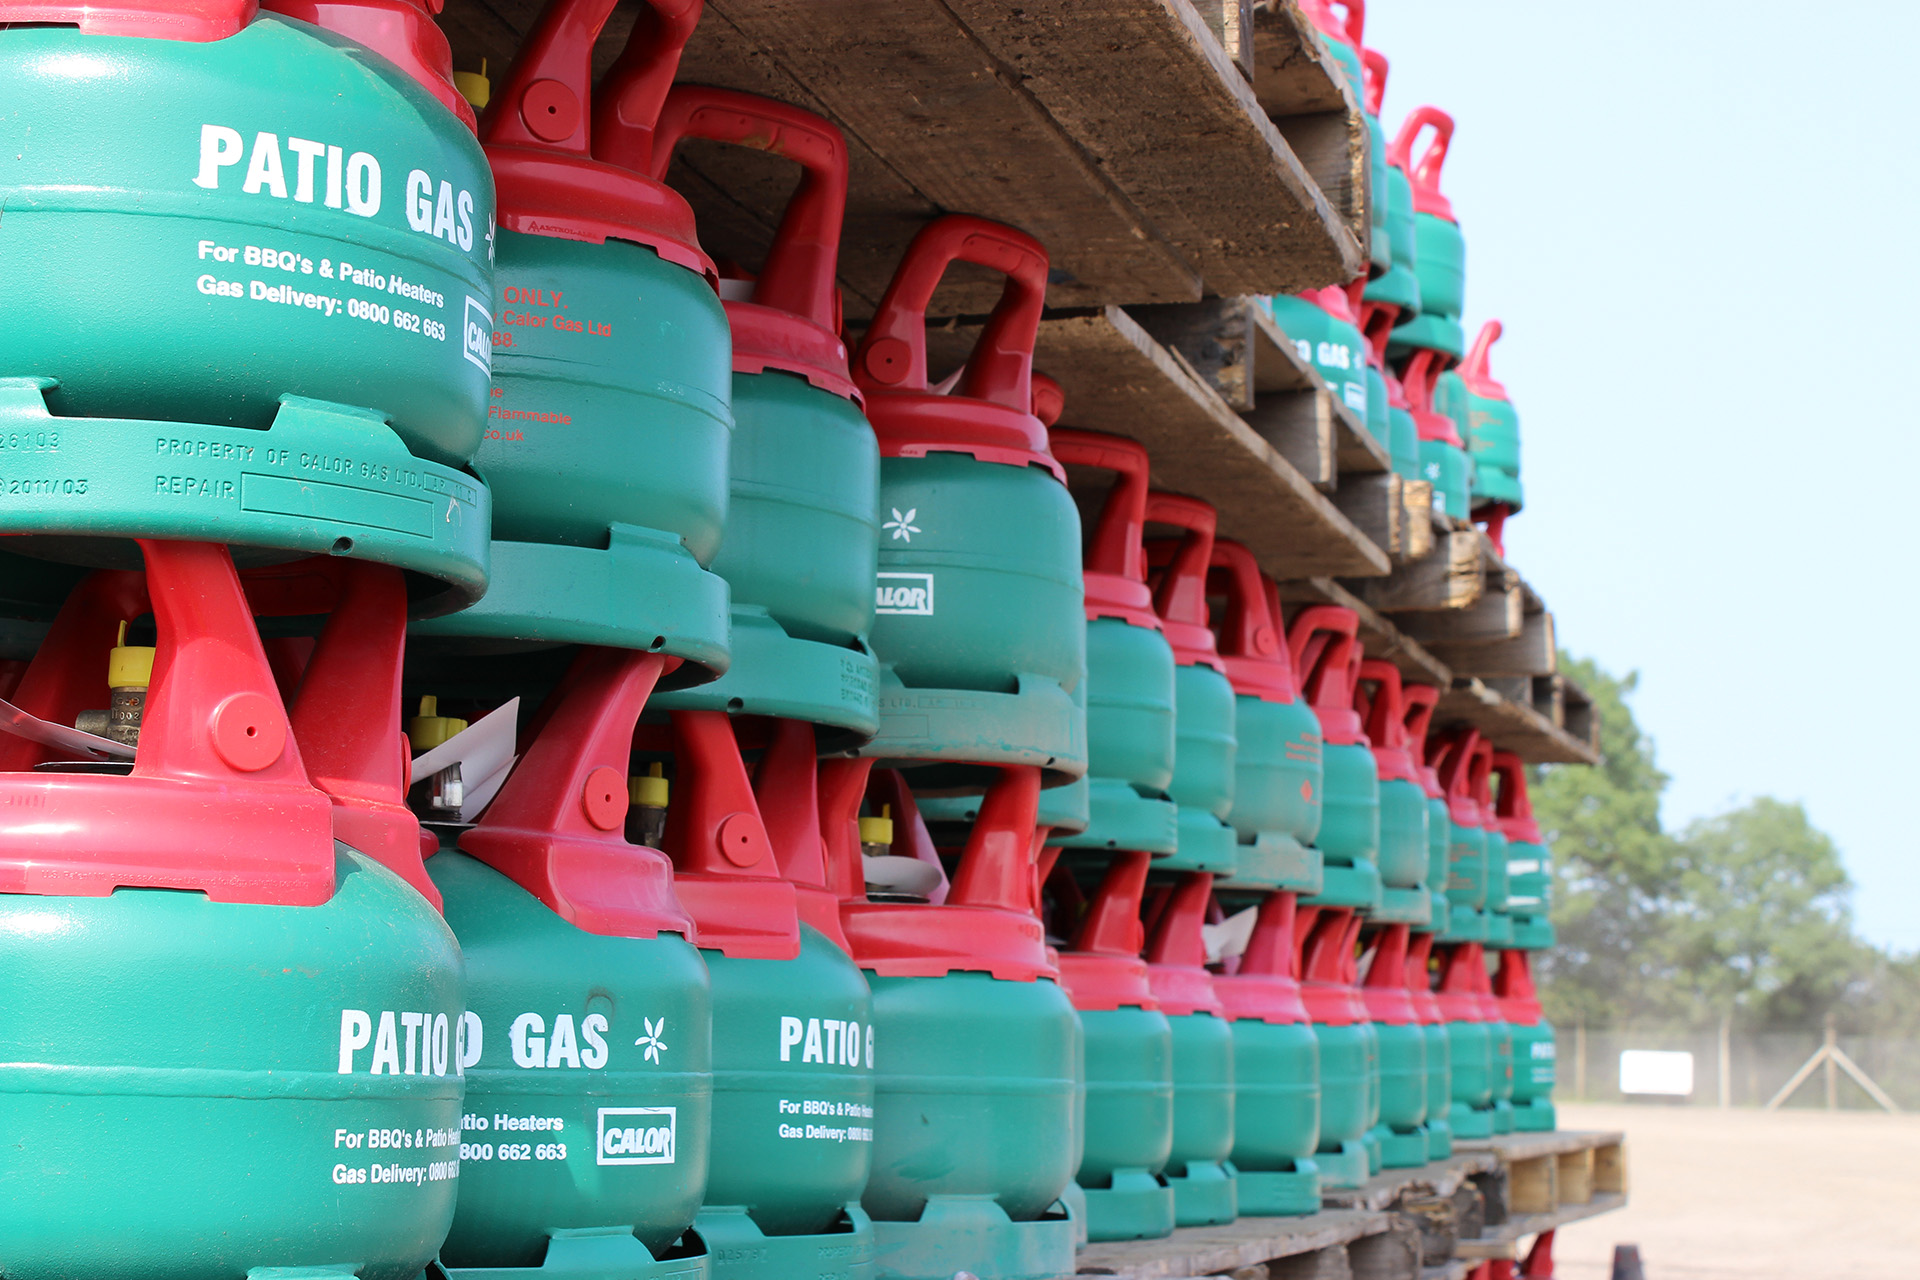 A collection of Calor patio gas bottles